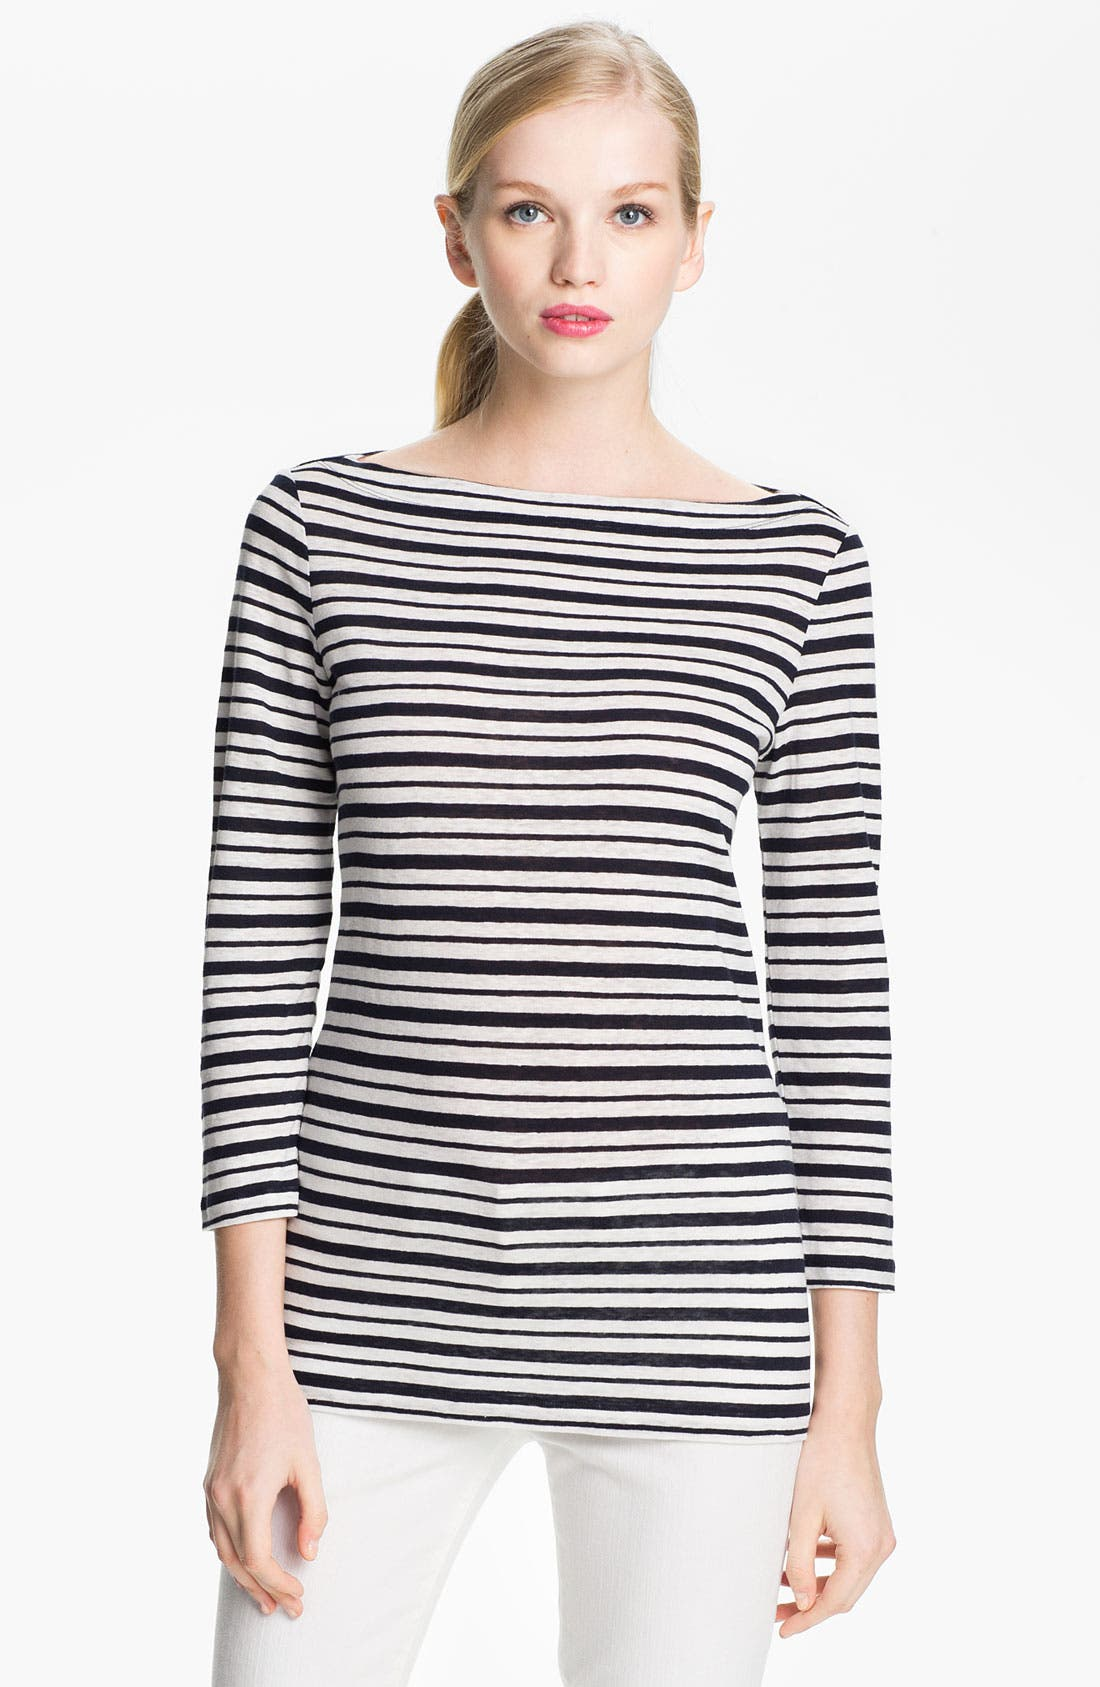 Alternate Image 1 Selected - Tory Burch 'Lori' Linen Top